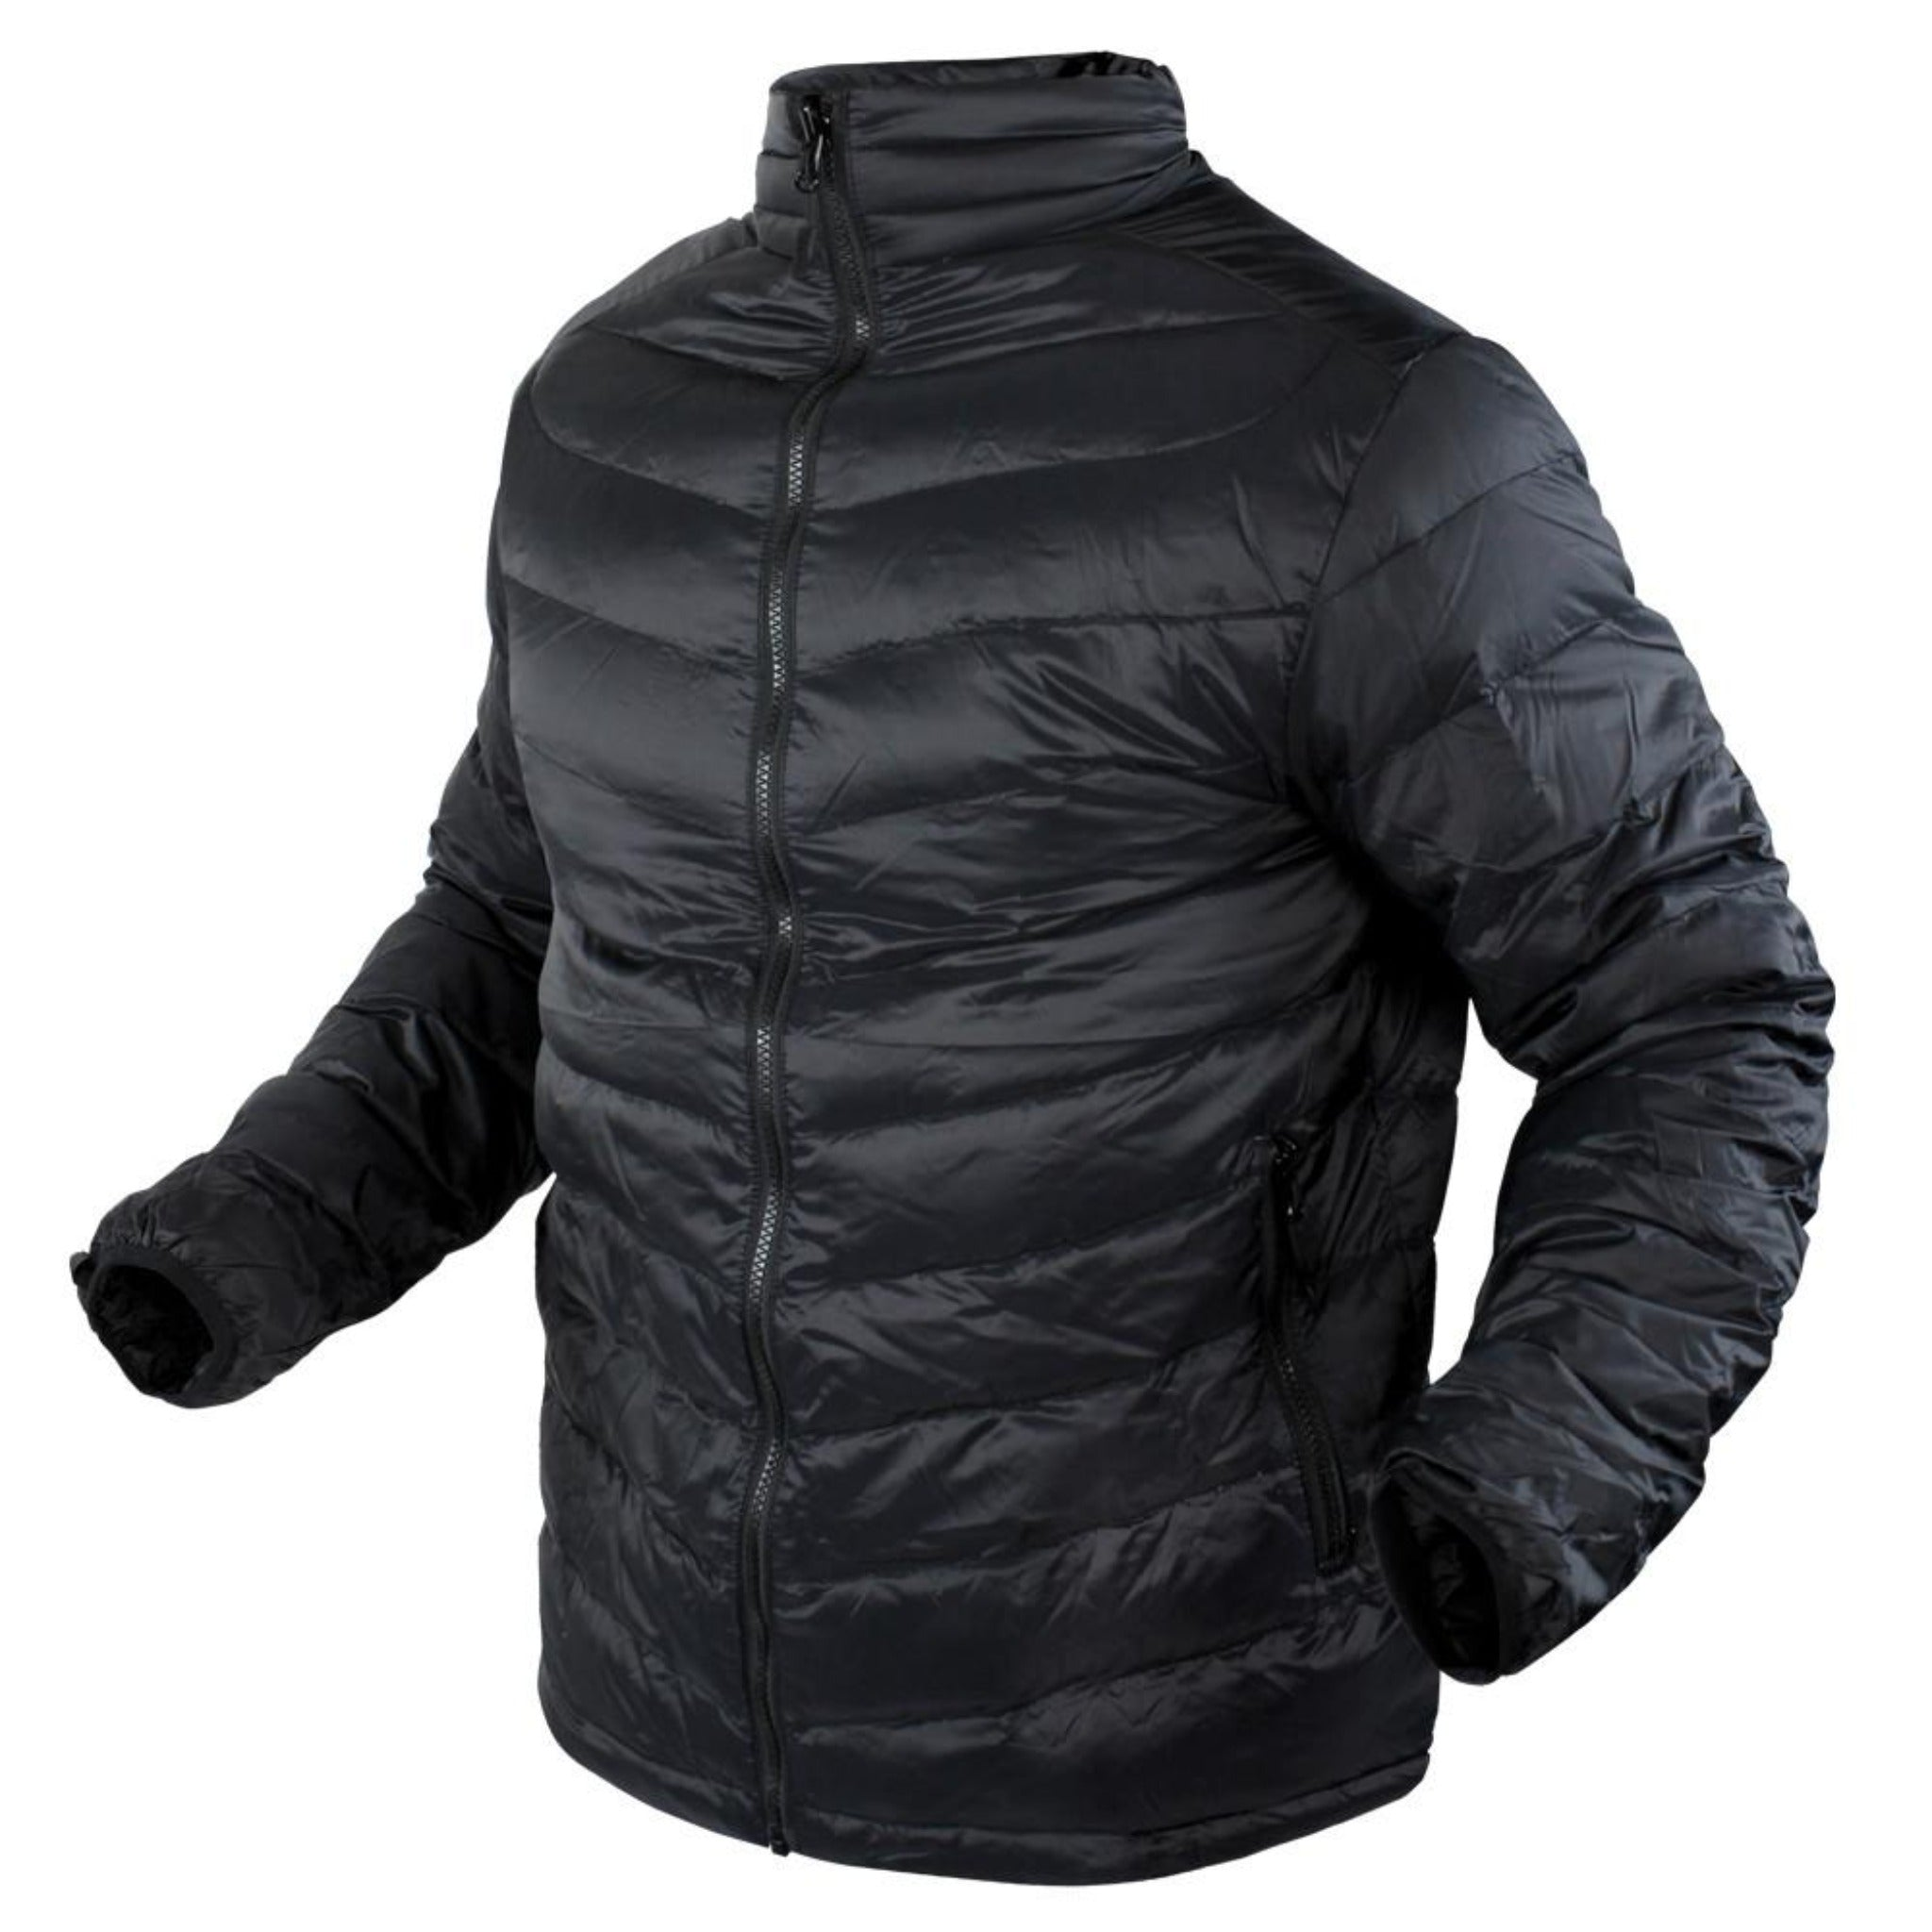 Black Down Jacket.